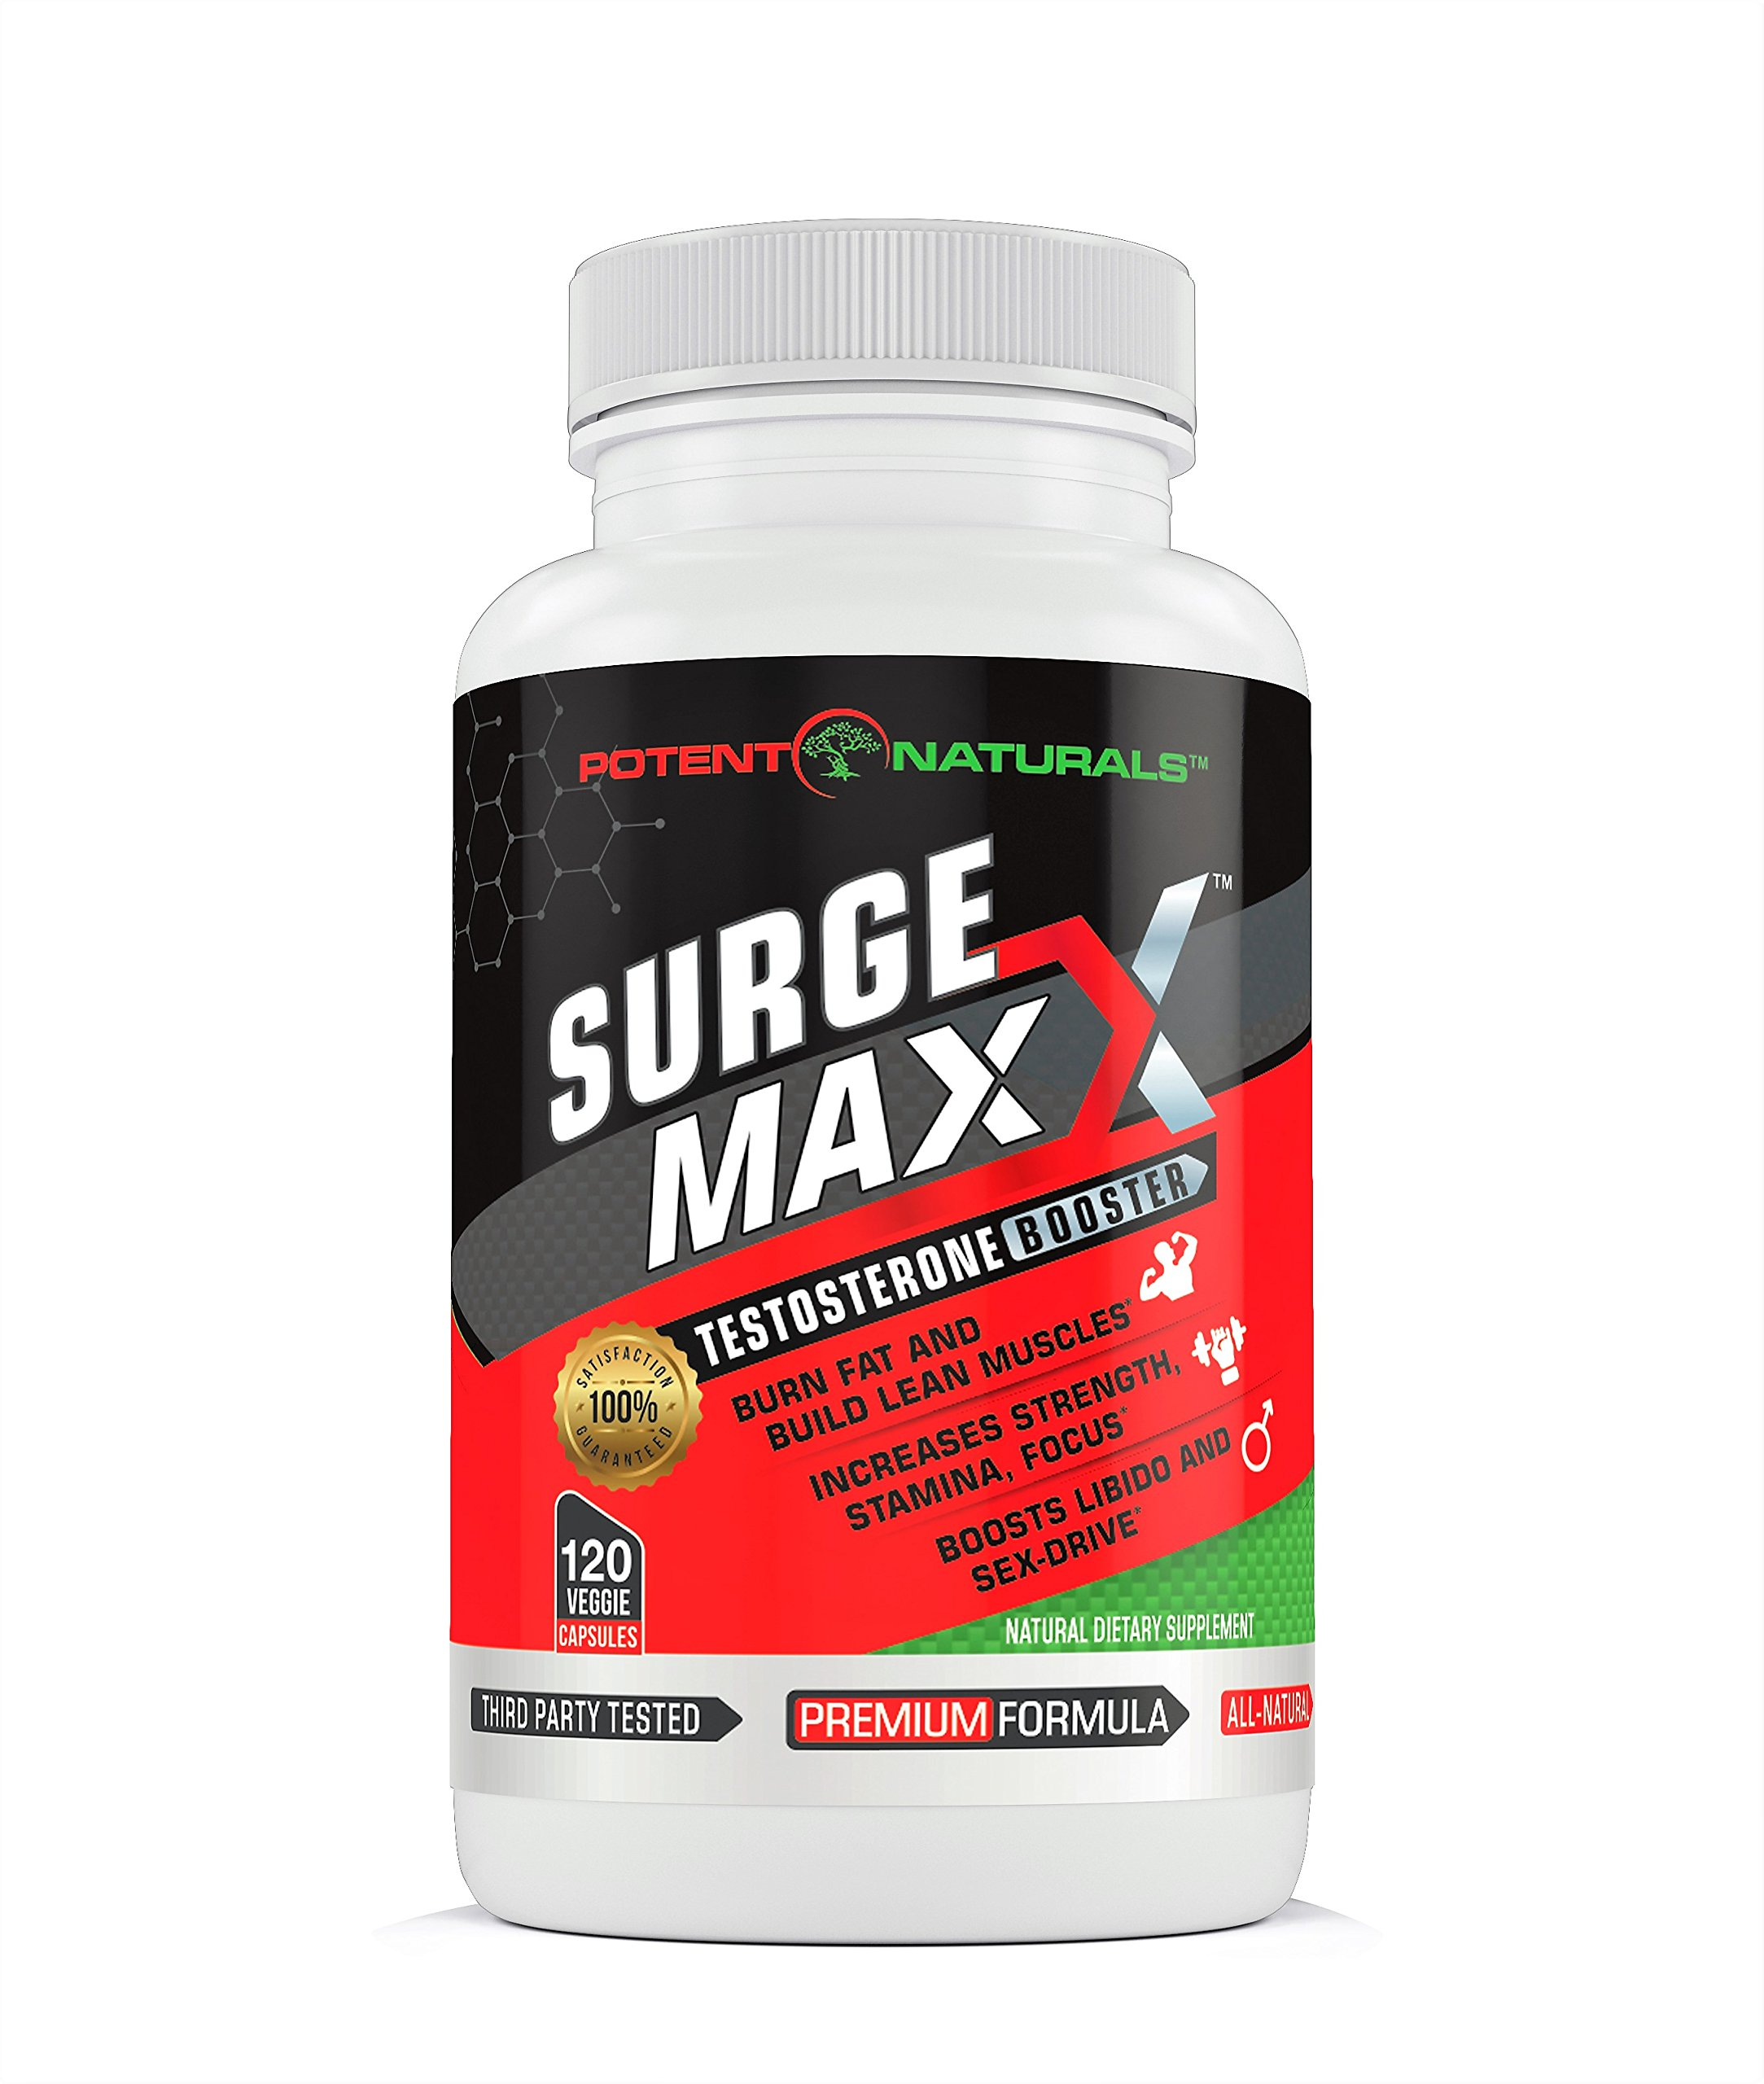 SURGE MAXX Testosterone Booster: Best Natural Testosterone Supplement 1600mg D-AA-CC/120 Veggie Capsules, 13 Potent Ingredients/Test Enhancer For Men To Boost Muscle Strength, Libido, Energy, Vitality